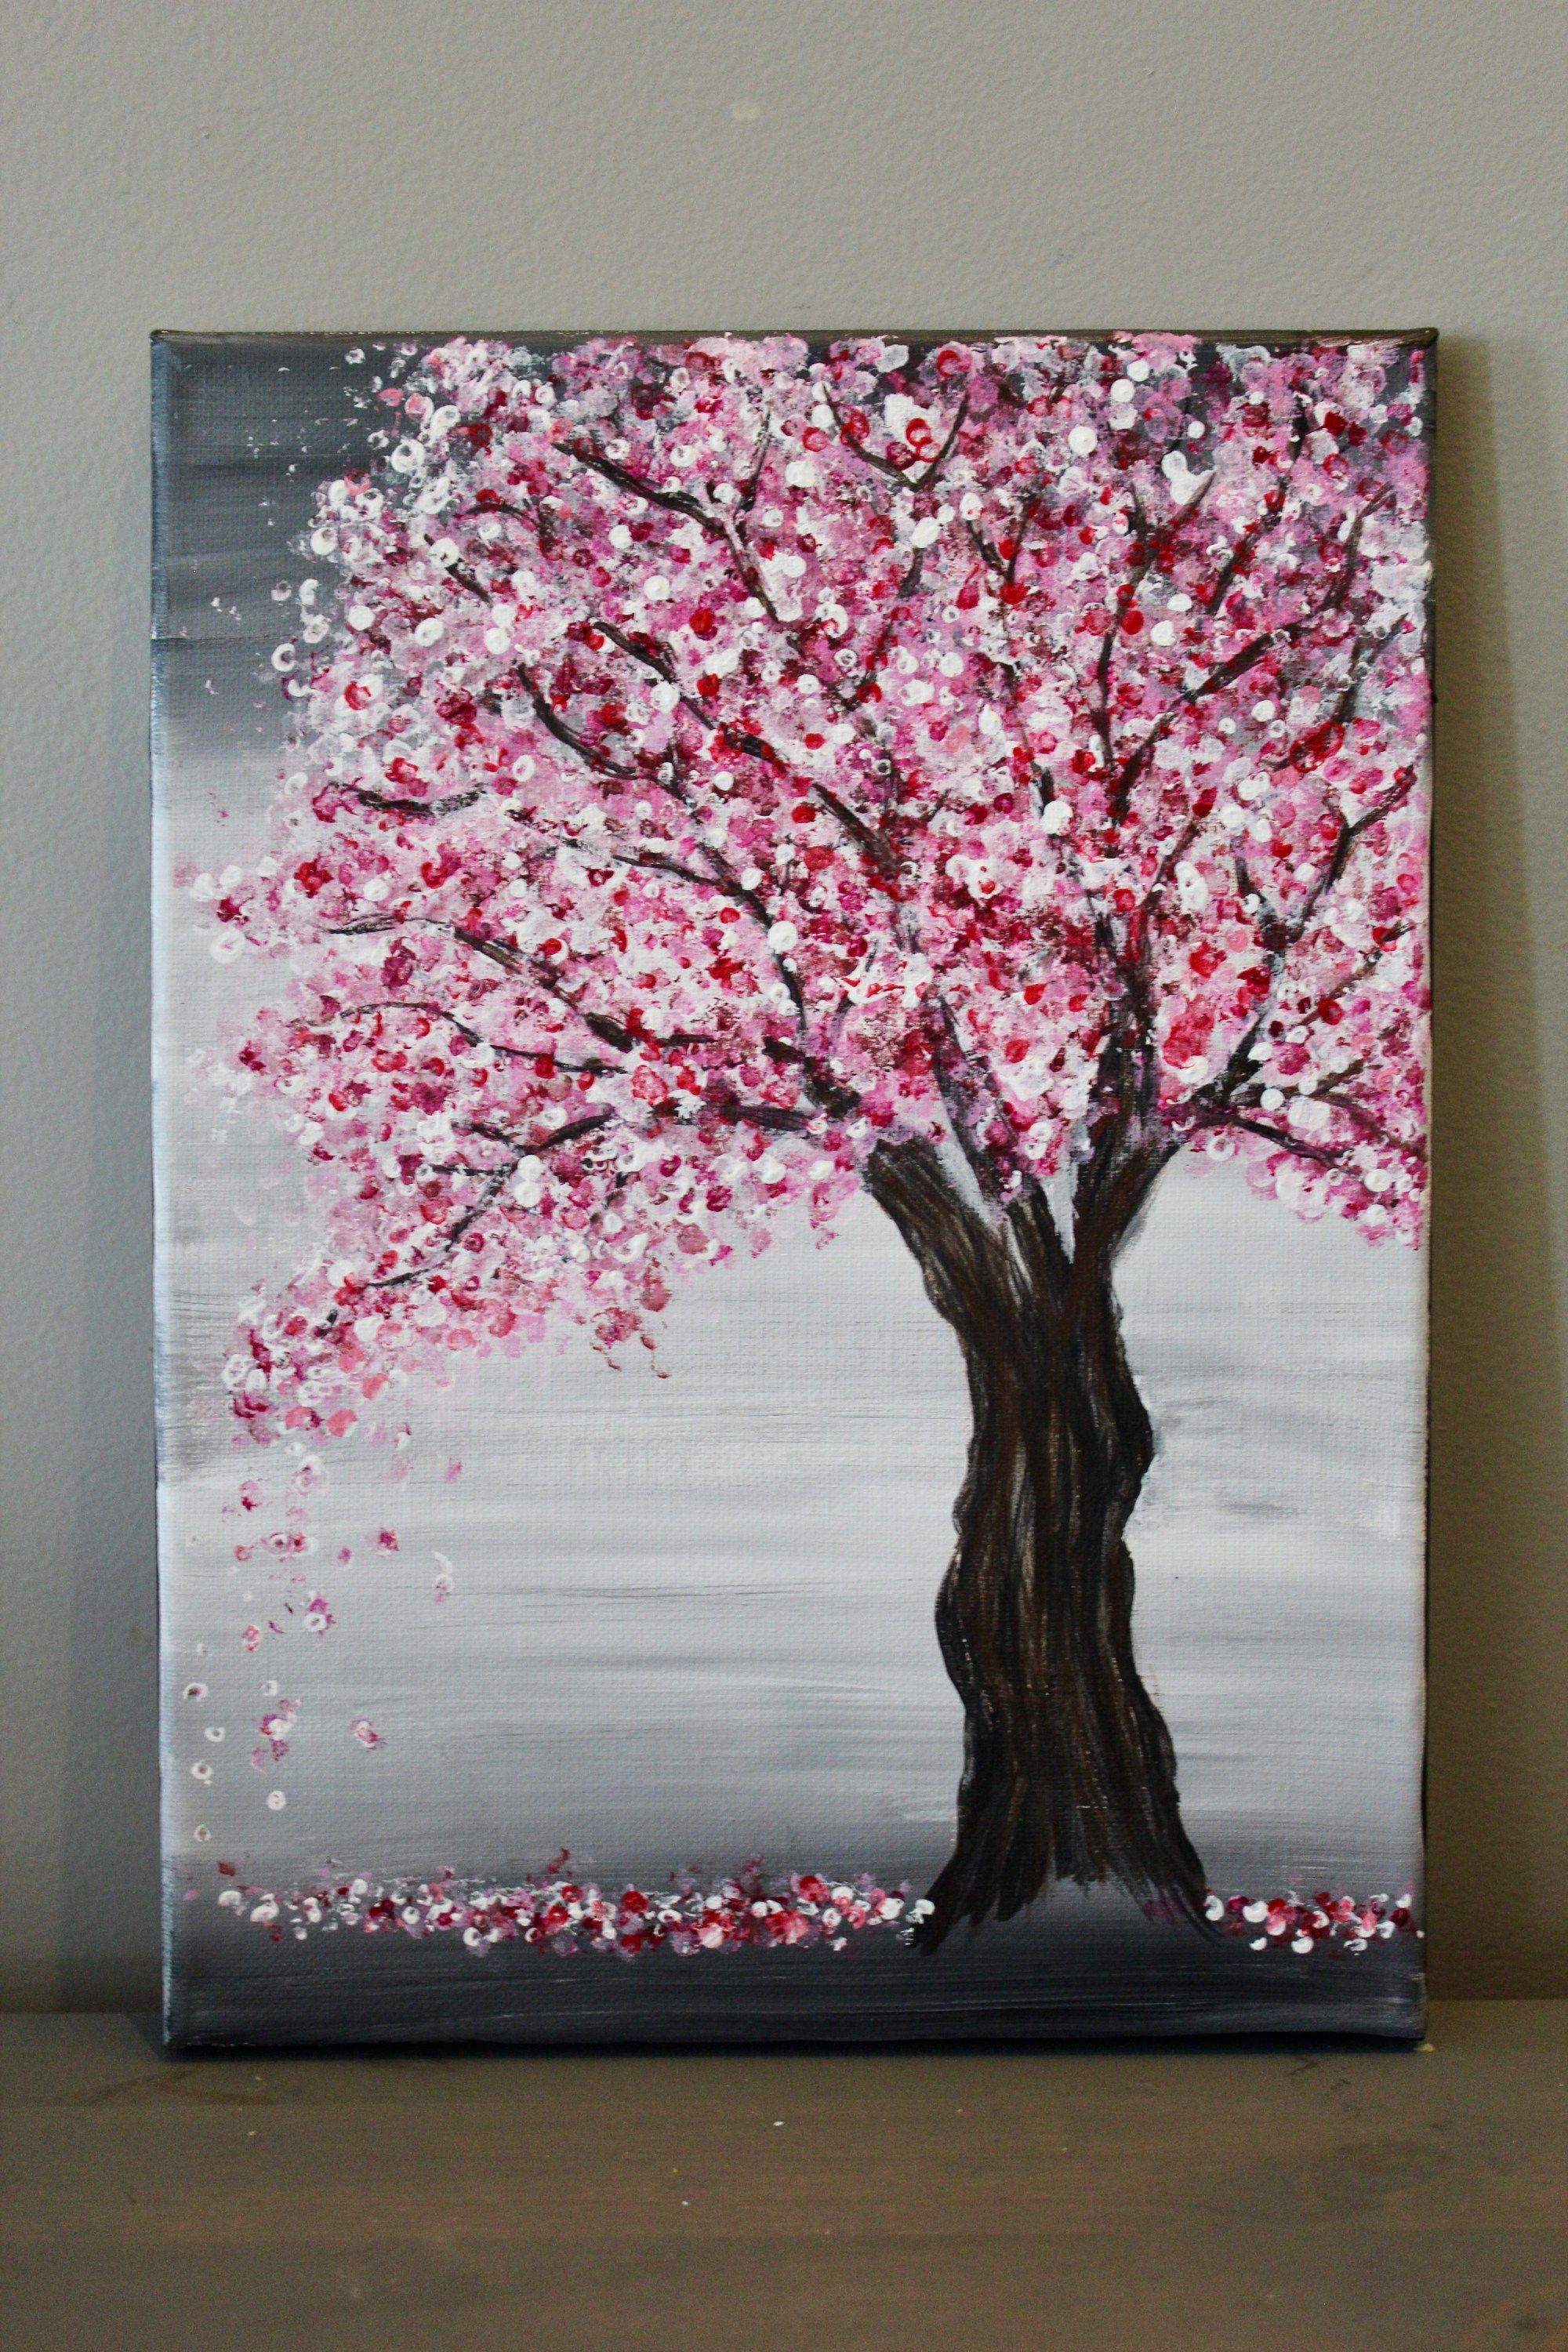 Painting a Cherry Blossom Tree with Acrylics and Cotton Swabs!